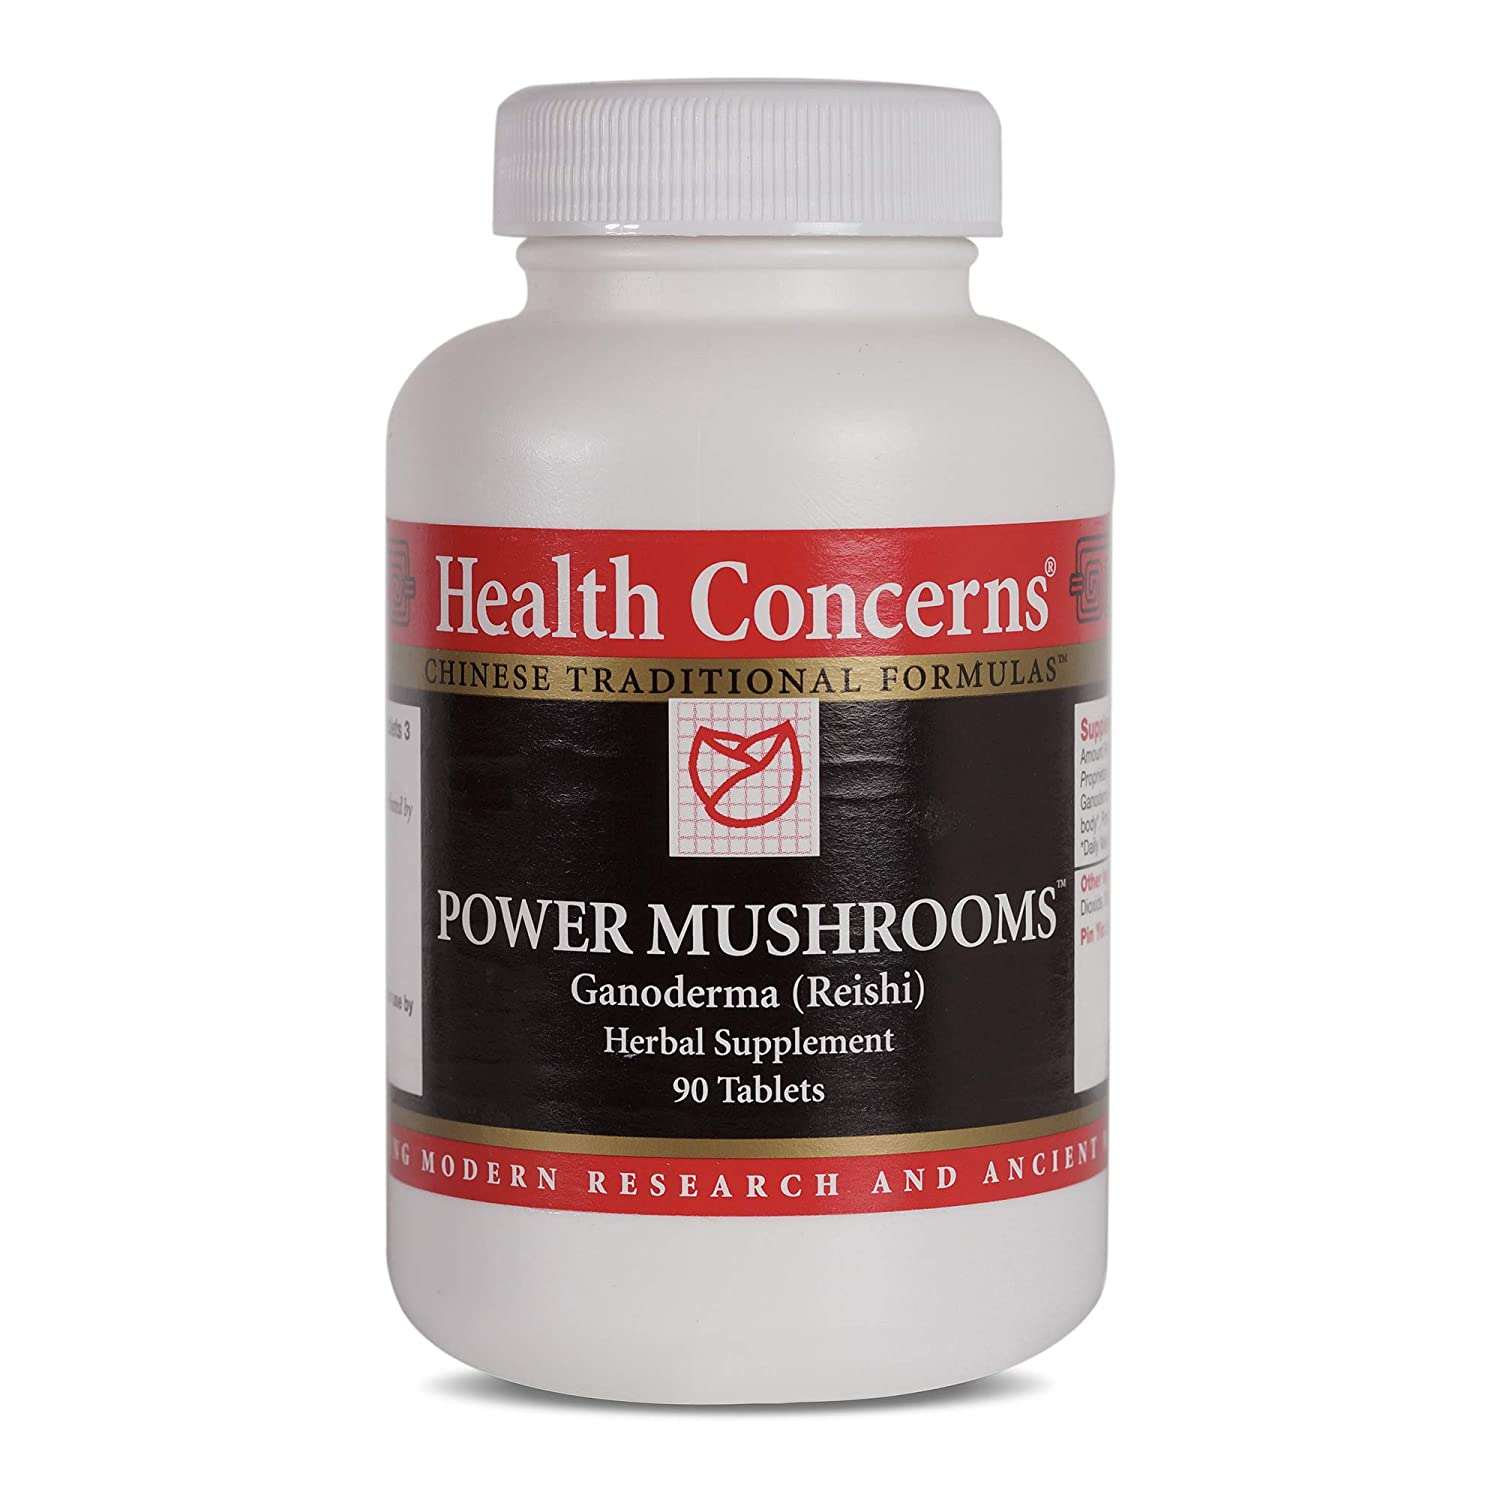 Health Concerns – Power Mushrooms – Ganoderma and Tremella Chinese Herbal Supplement – Enhances Immune Function – with Red Ganoderma Reishi Fruiting Body – 90 Tablets per Bottle